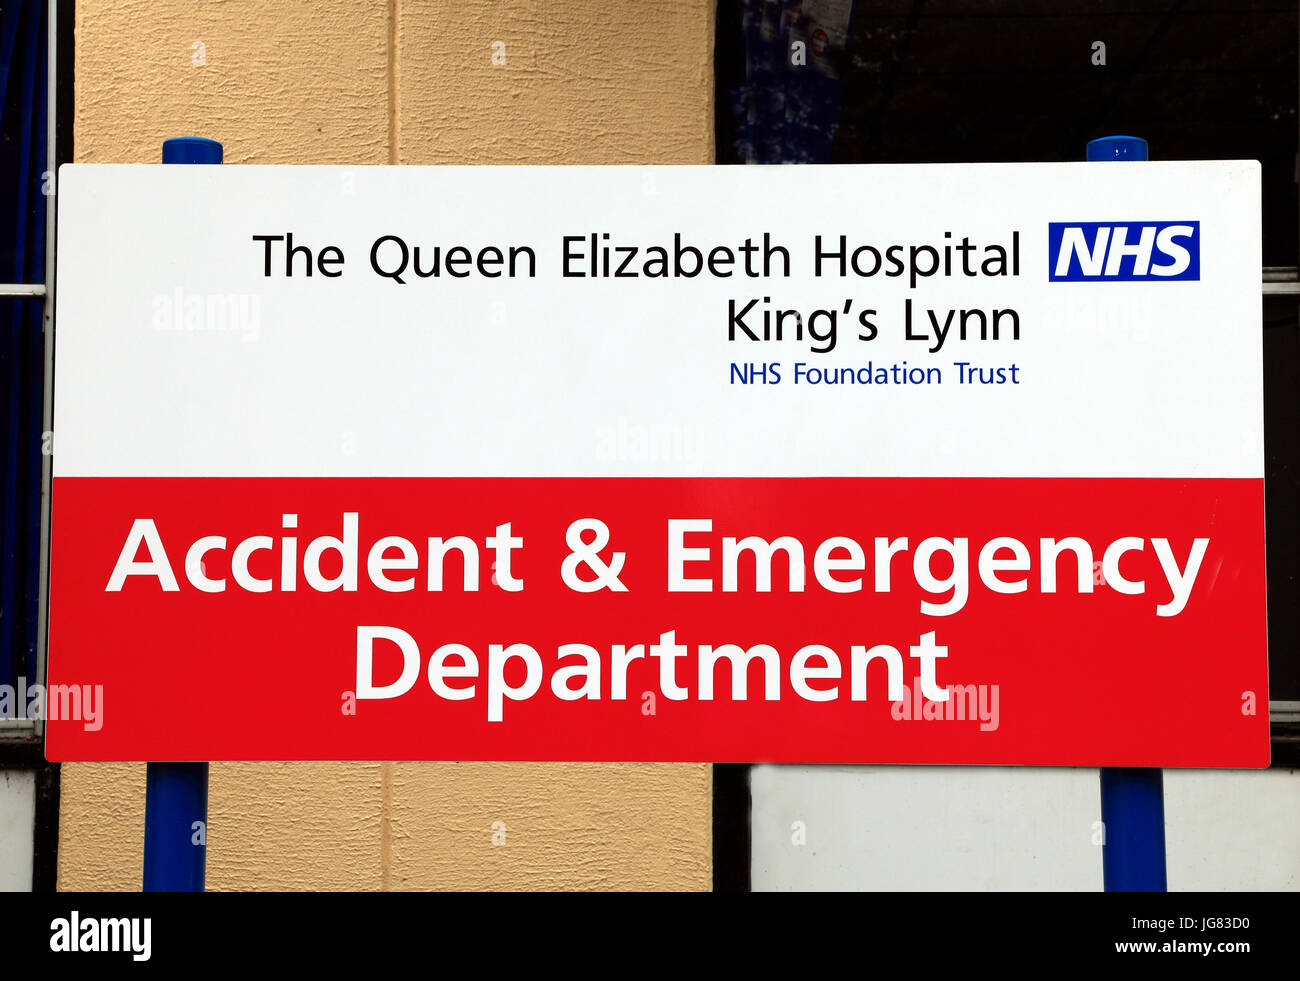 English hospital emergency department sign stock photos english queen elizabeth hospital kings lynn accident emergency department sign english sciox Image collections